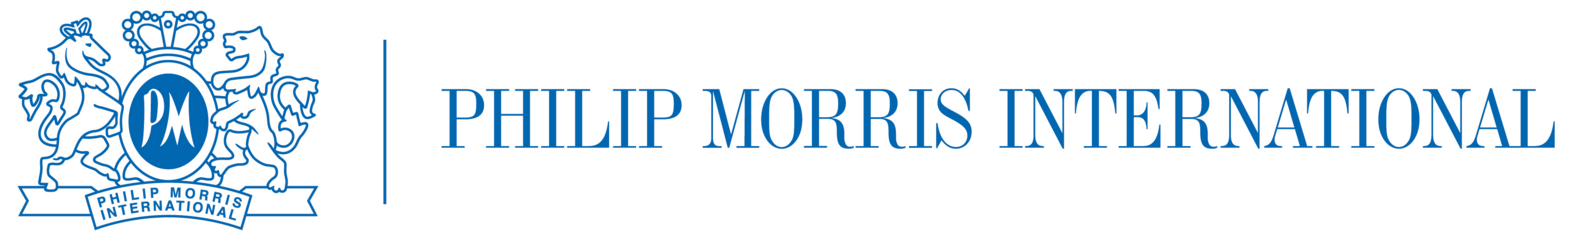 philip morris international company overview 60 vacancies at philip morris international - apply now for consumer and retailer journey head (swiss market), omnichannel strategy head (manager) or commercial.